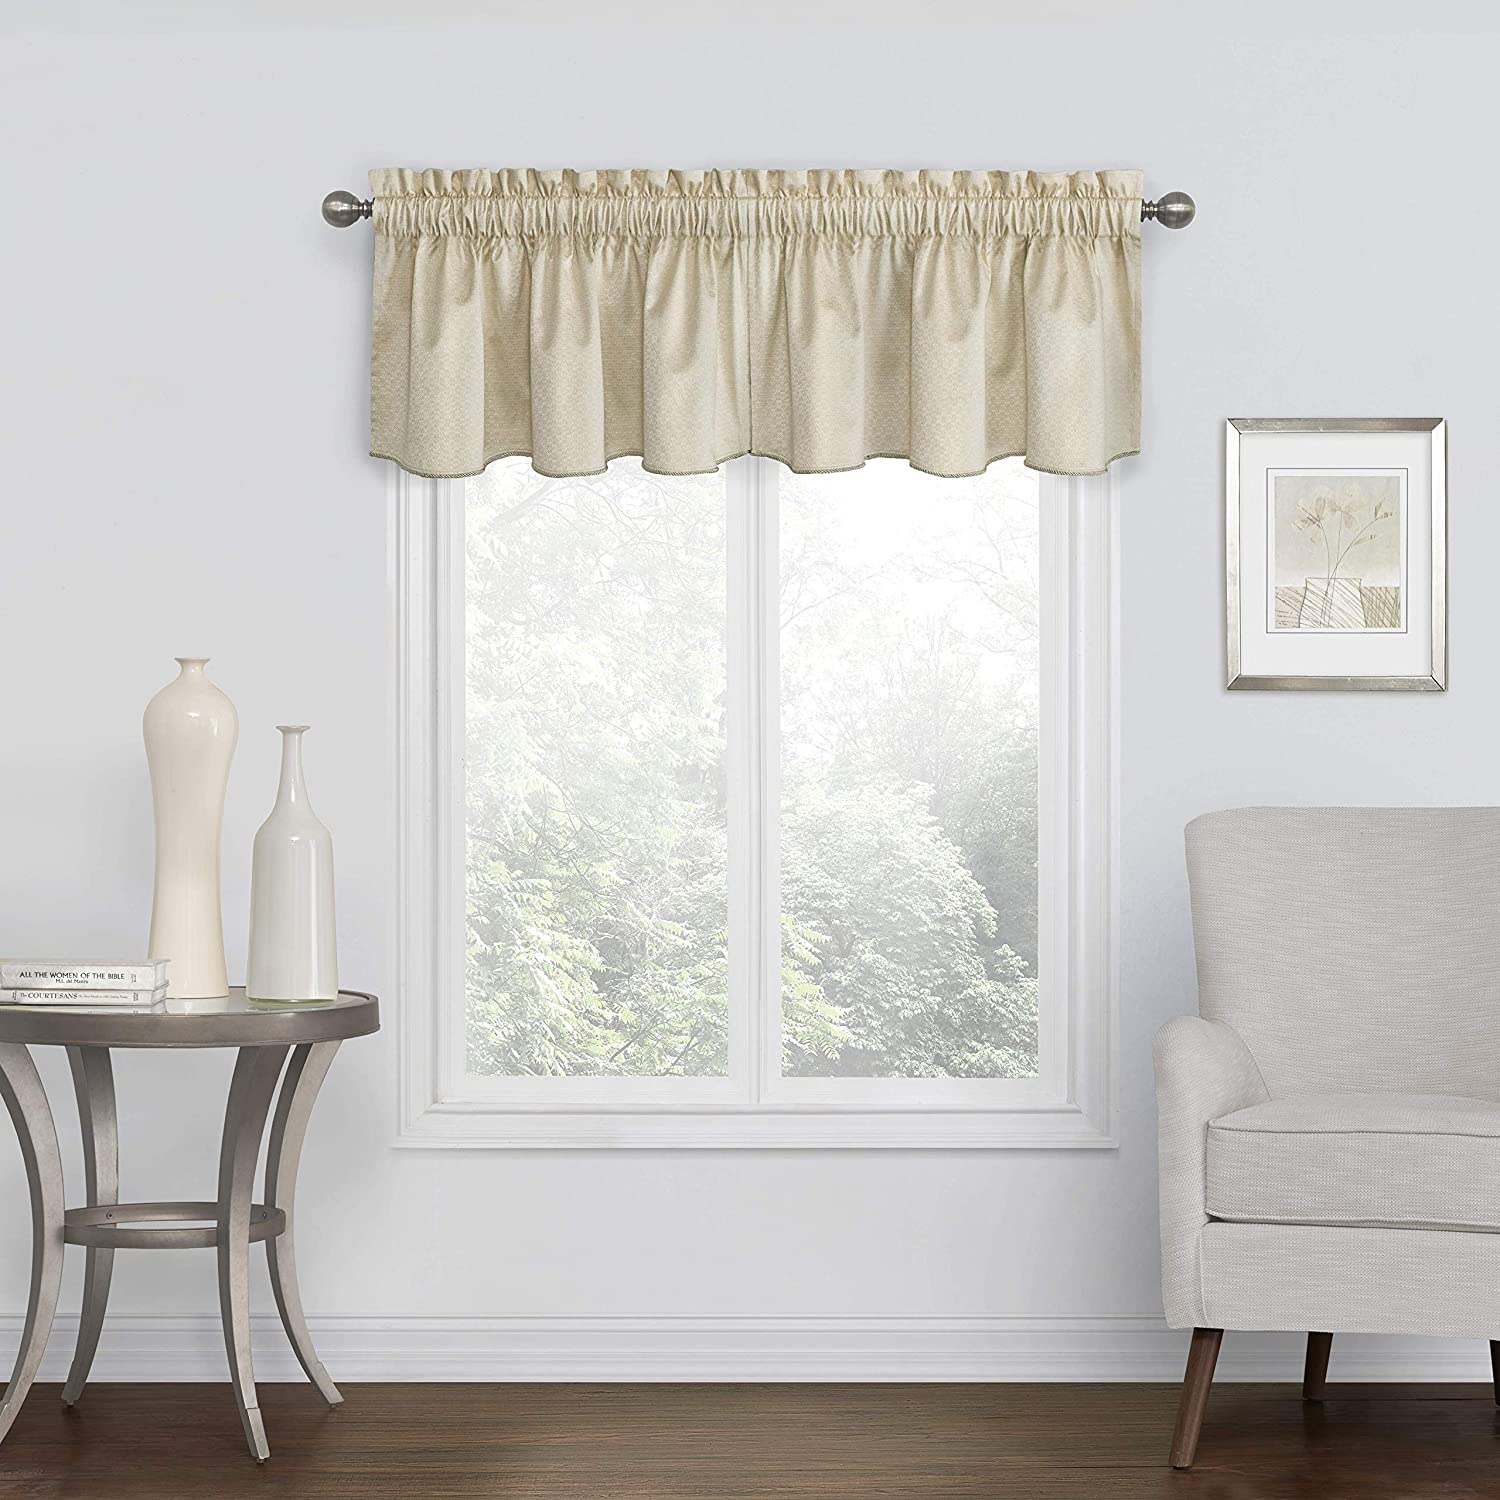 Eclipse 42 X 21 Short Valance Small Window Curtains Bathroom Living Room And Ebay,Ikea Customer Service Usa Email